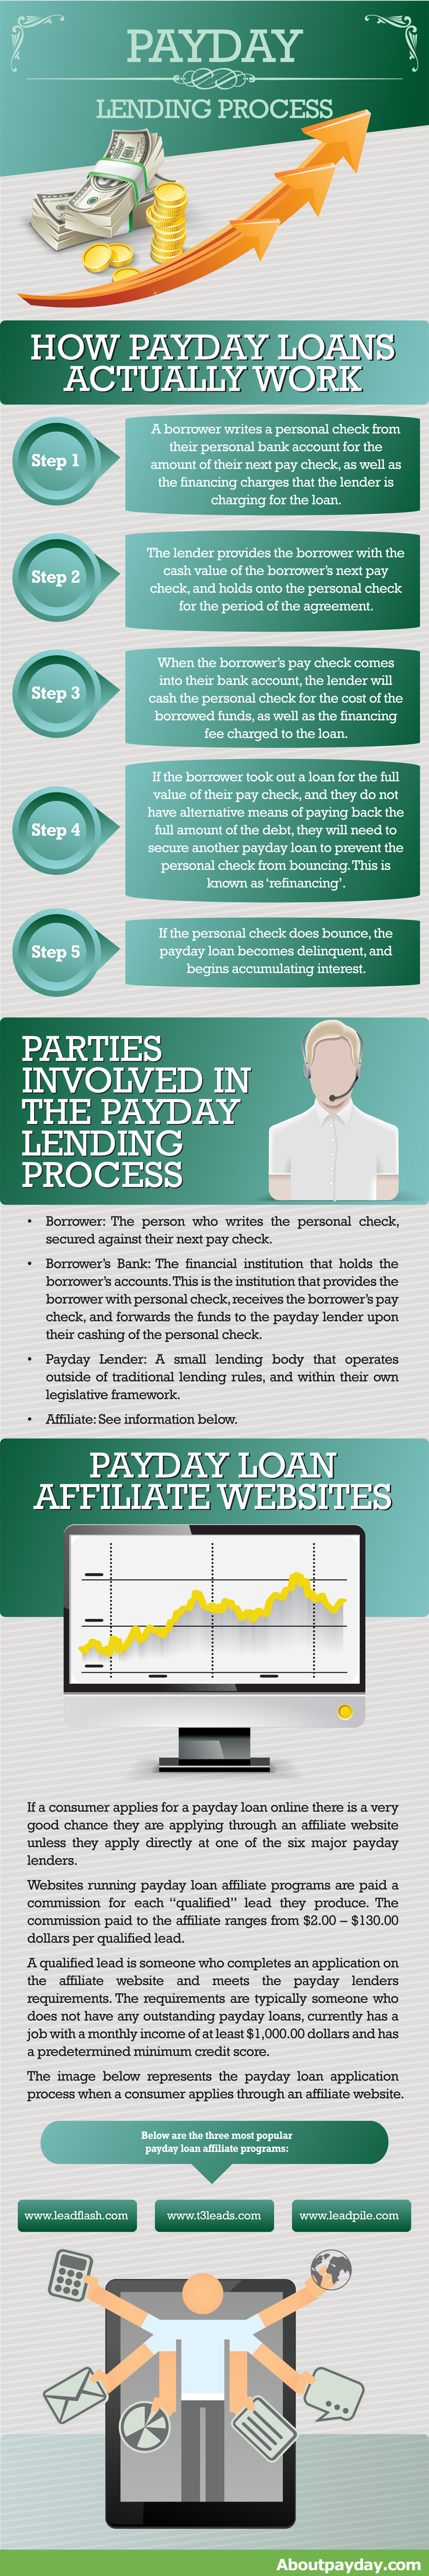 When Does A Payday Loan Typically Mature